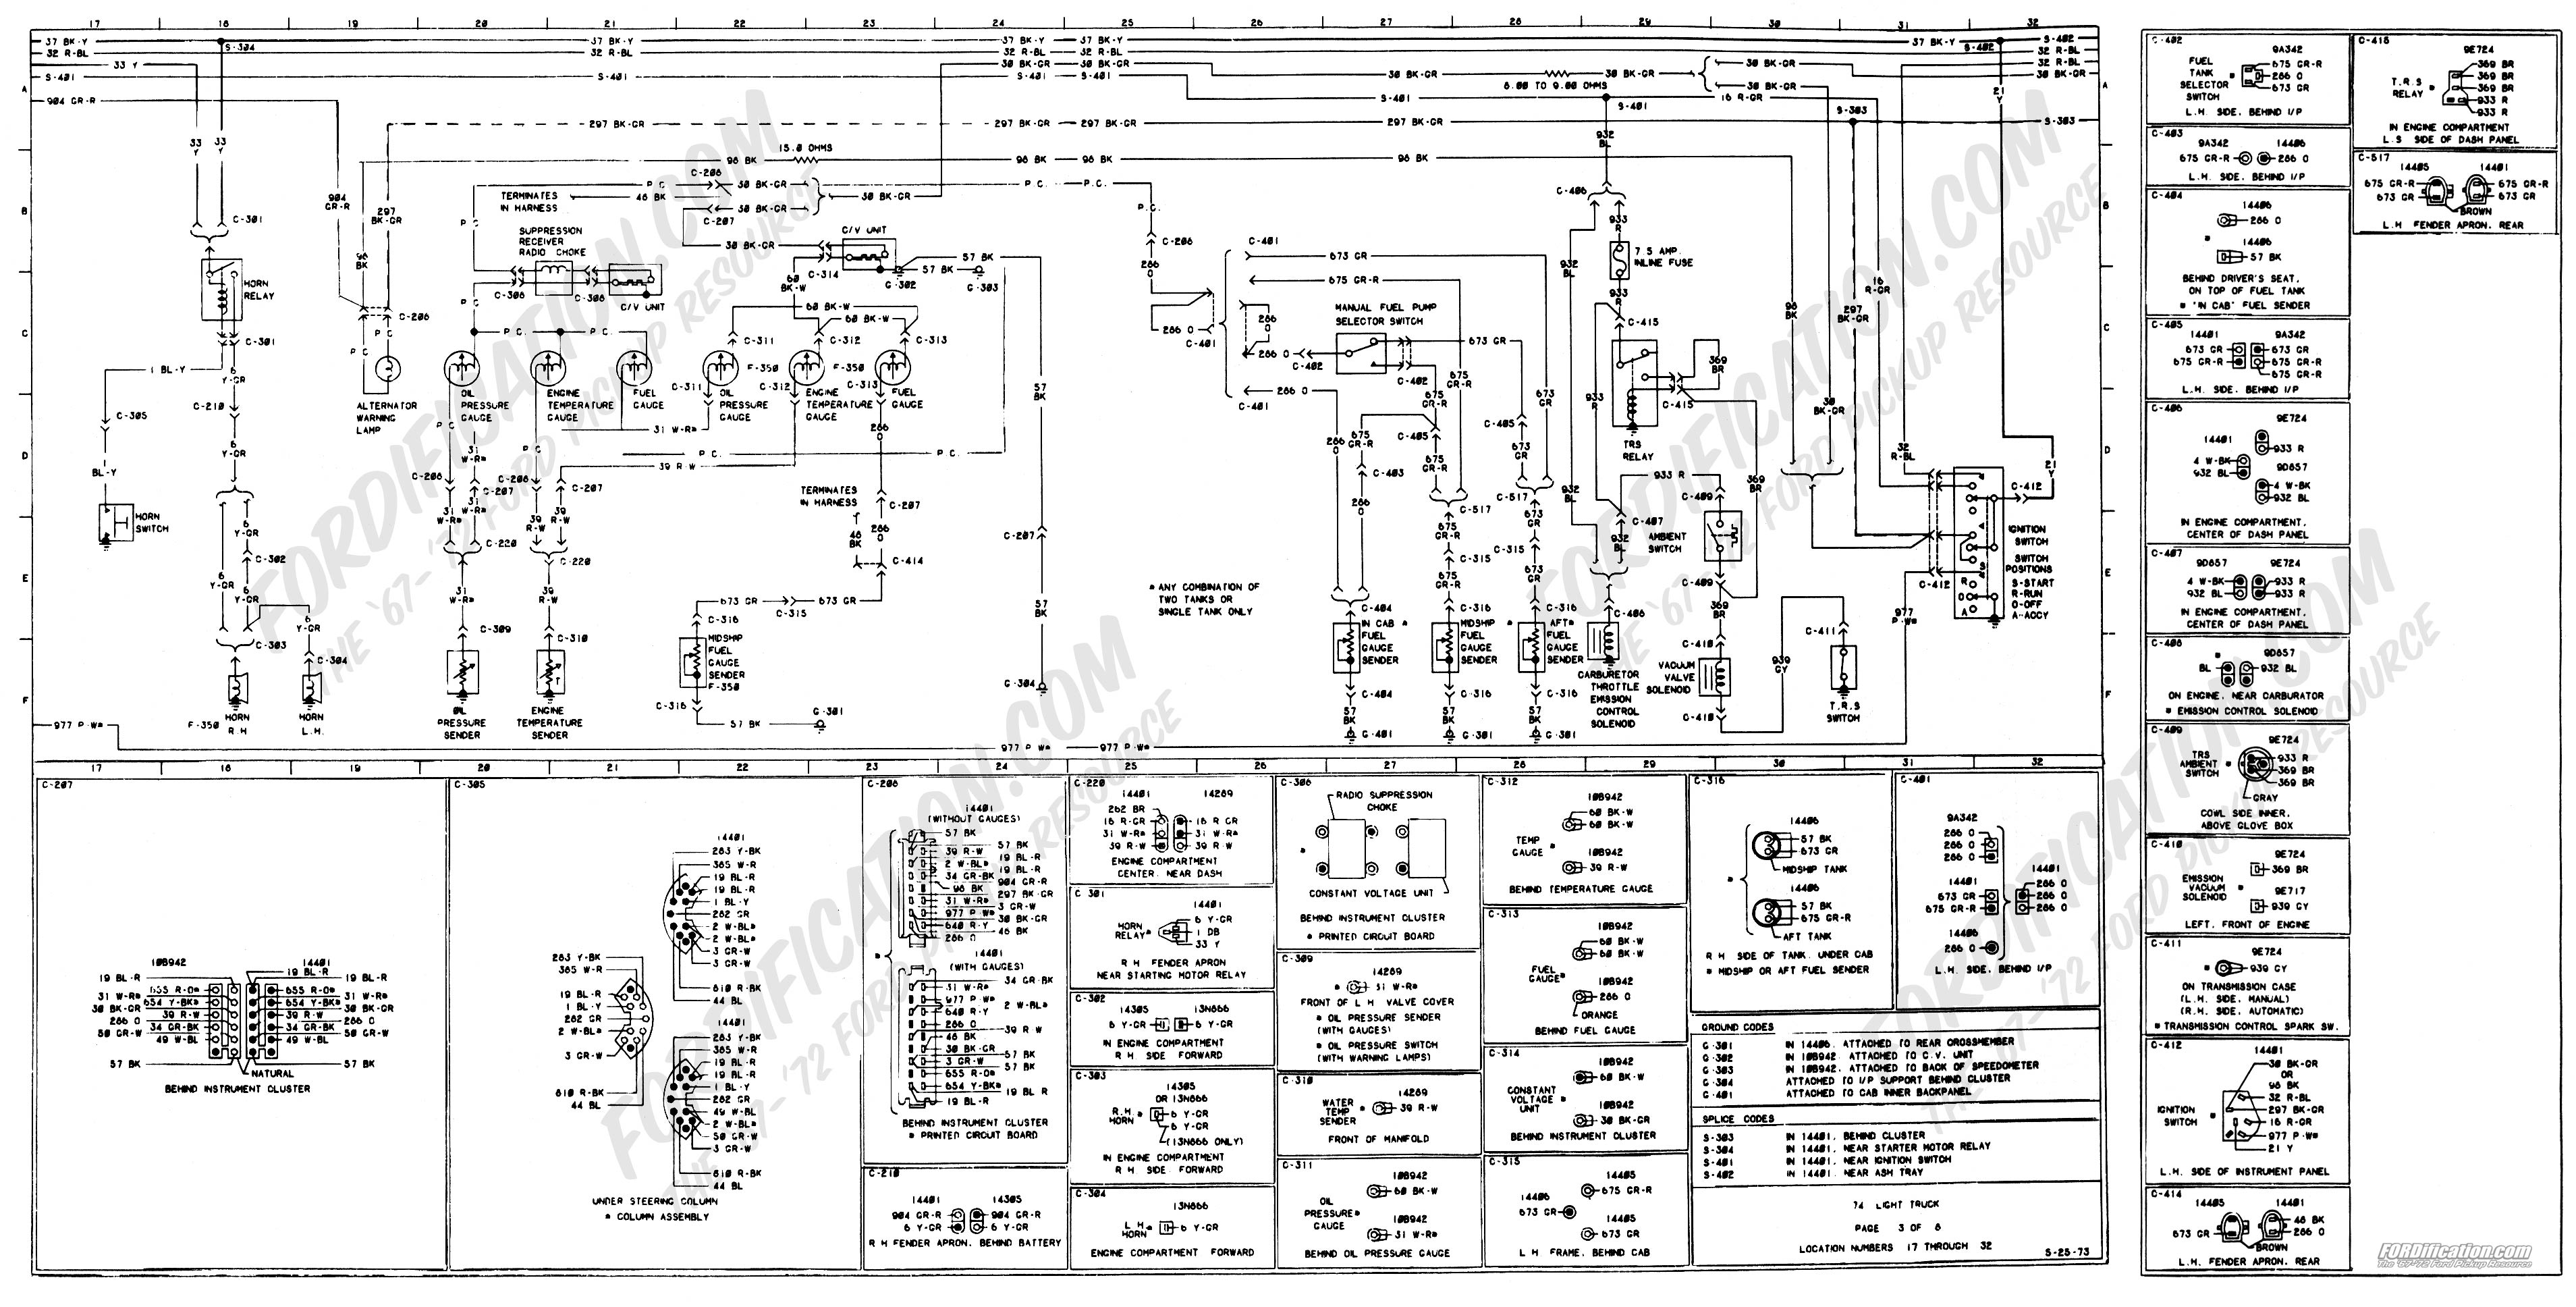 wiring_74master_3of8 1973 1979 ford truck wiring diagrams & schematics fordification net 03 f350 wiring diagram at couponss.co